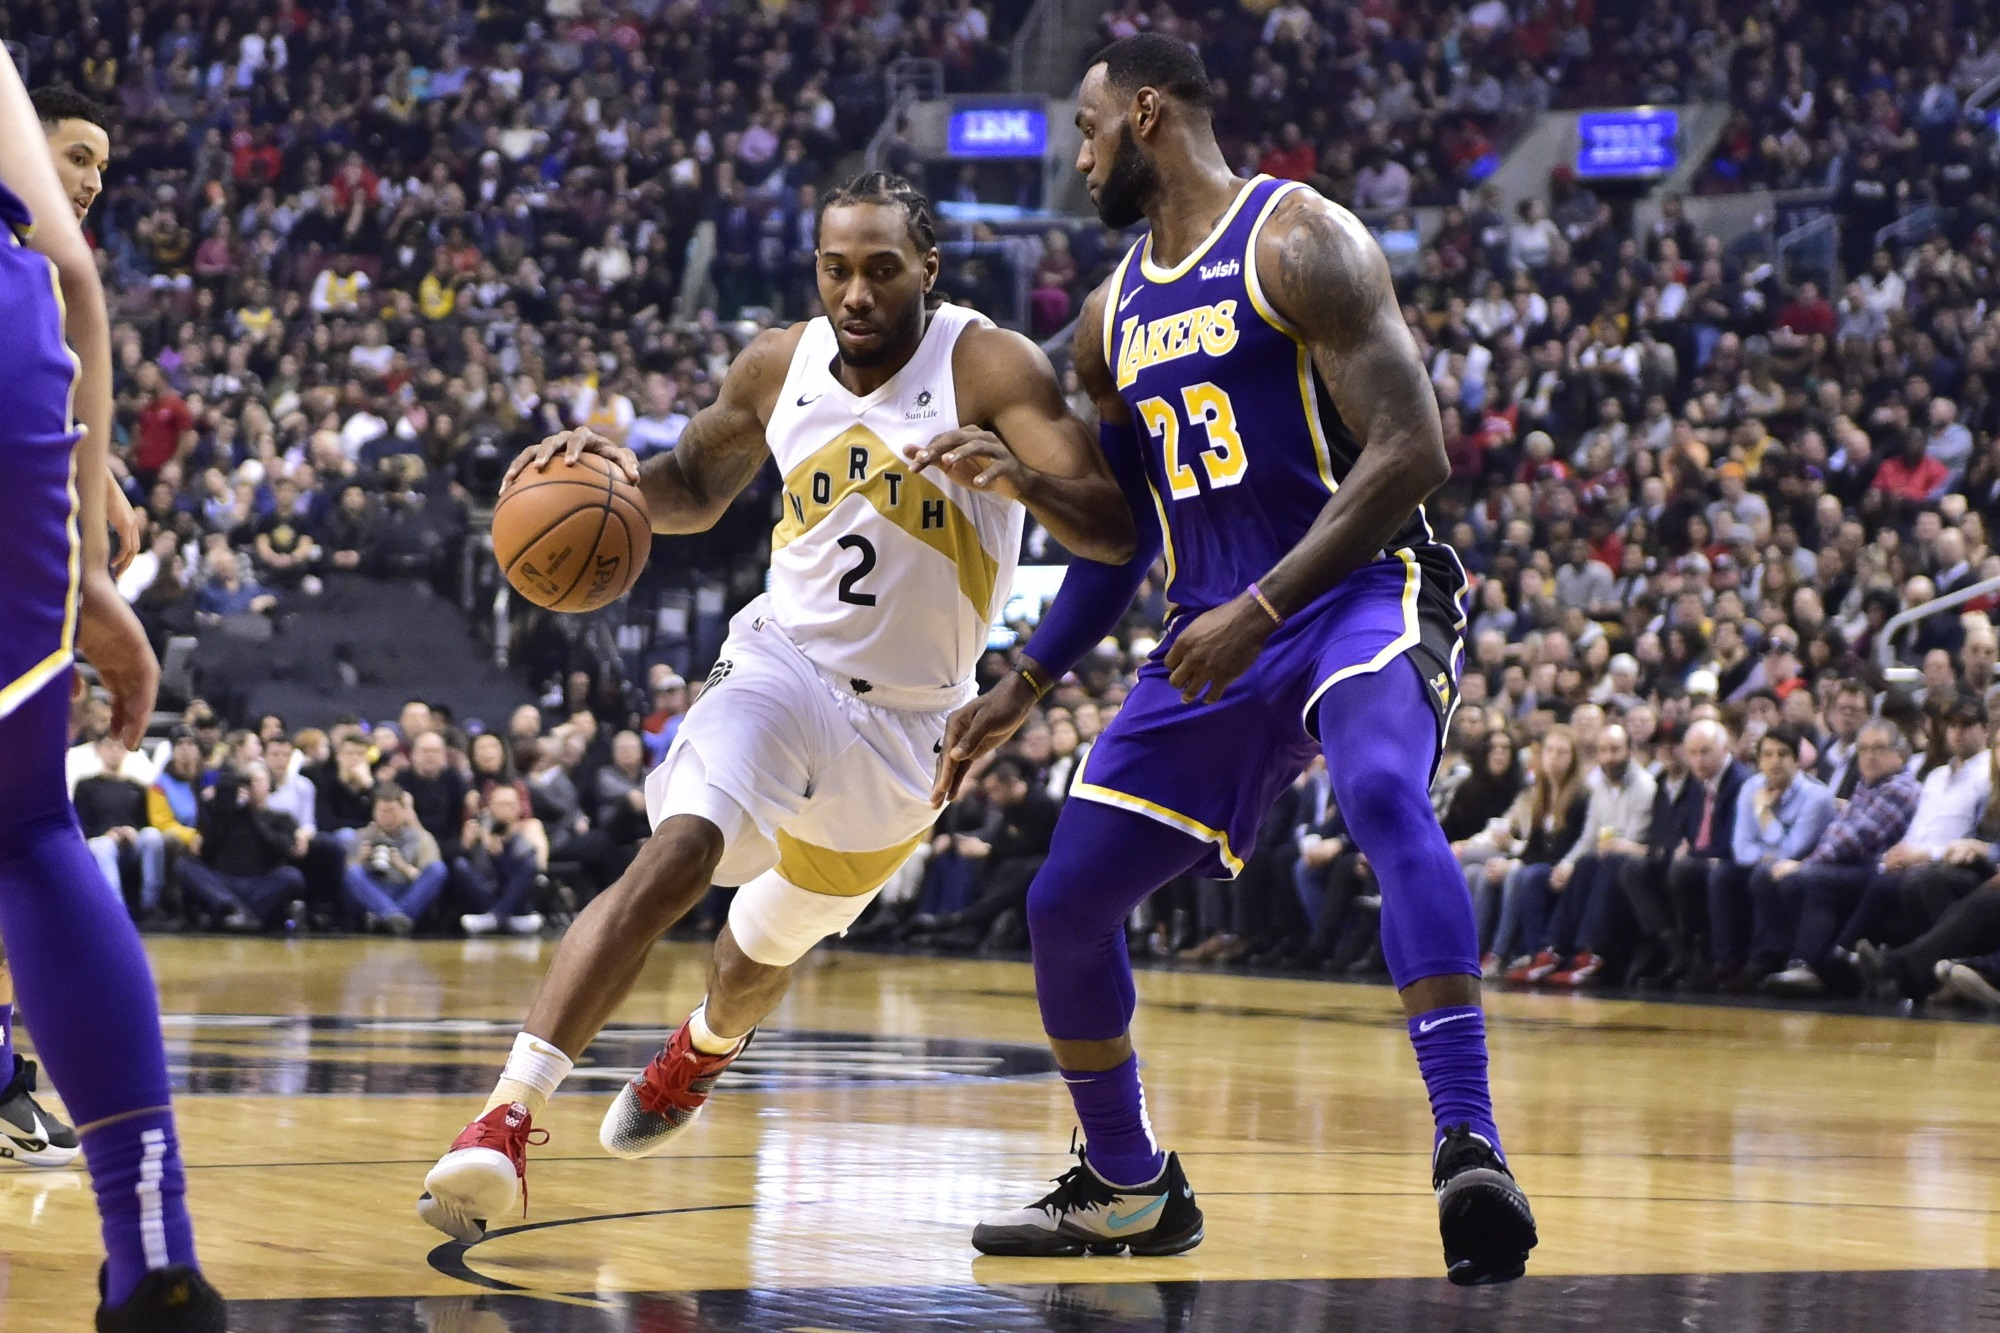 LeBron James and Kawhi Leonard, Los Angeles Lakers vs Toronto Raptors at Scotiabank Arena